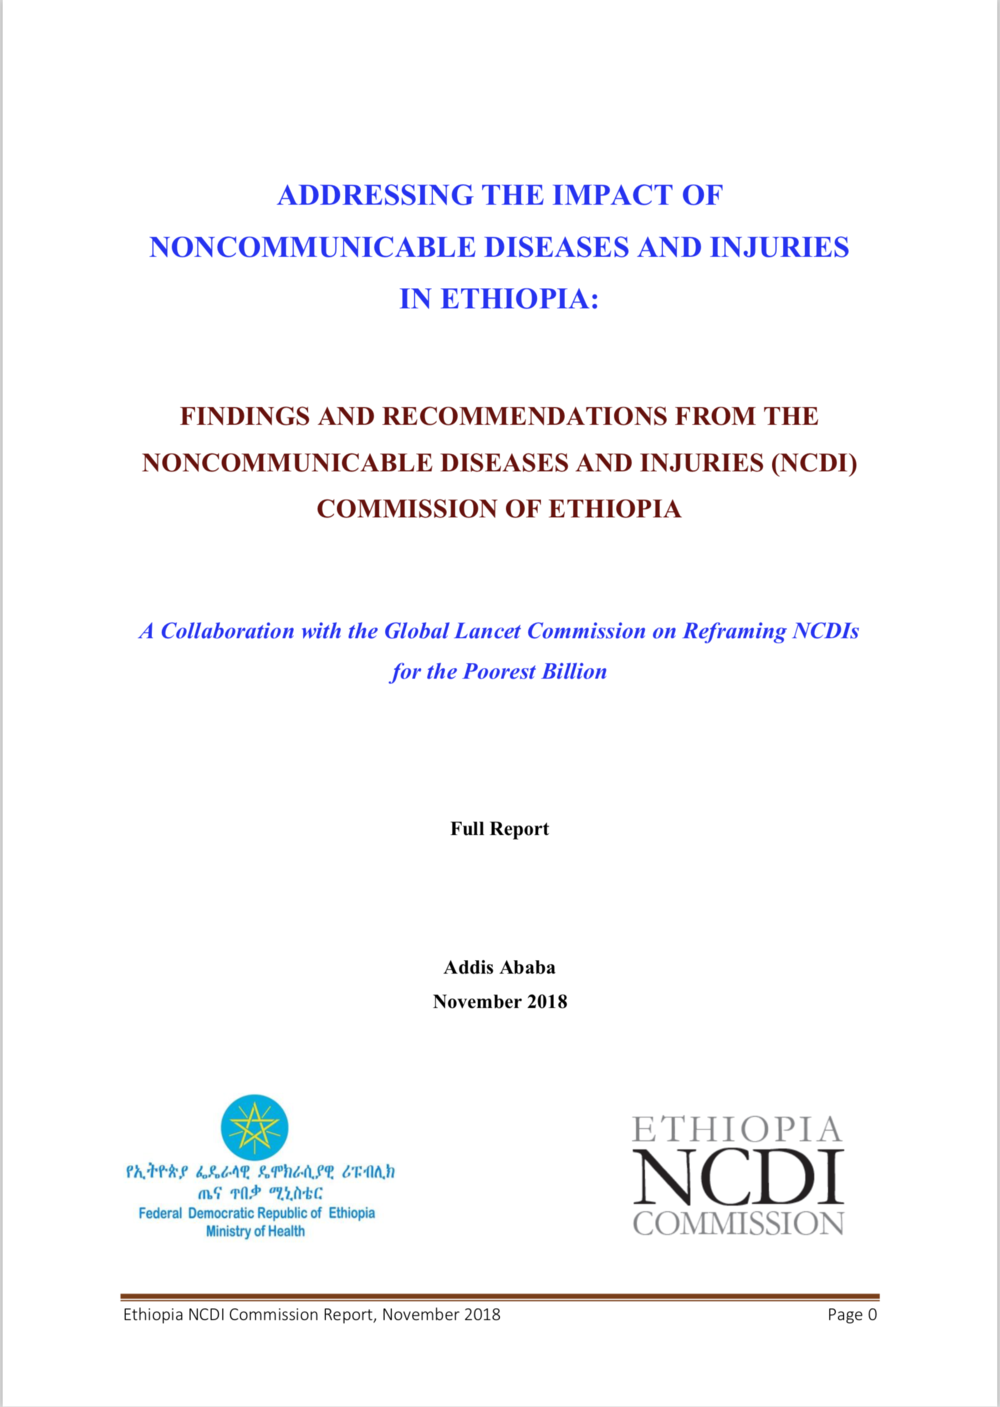 Ethiopia NCDI Commission Full Report FINAL.png